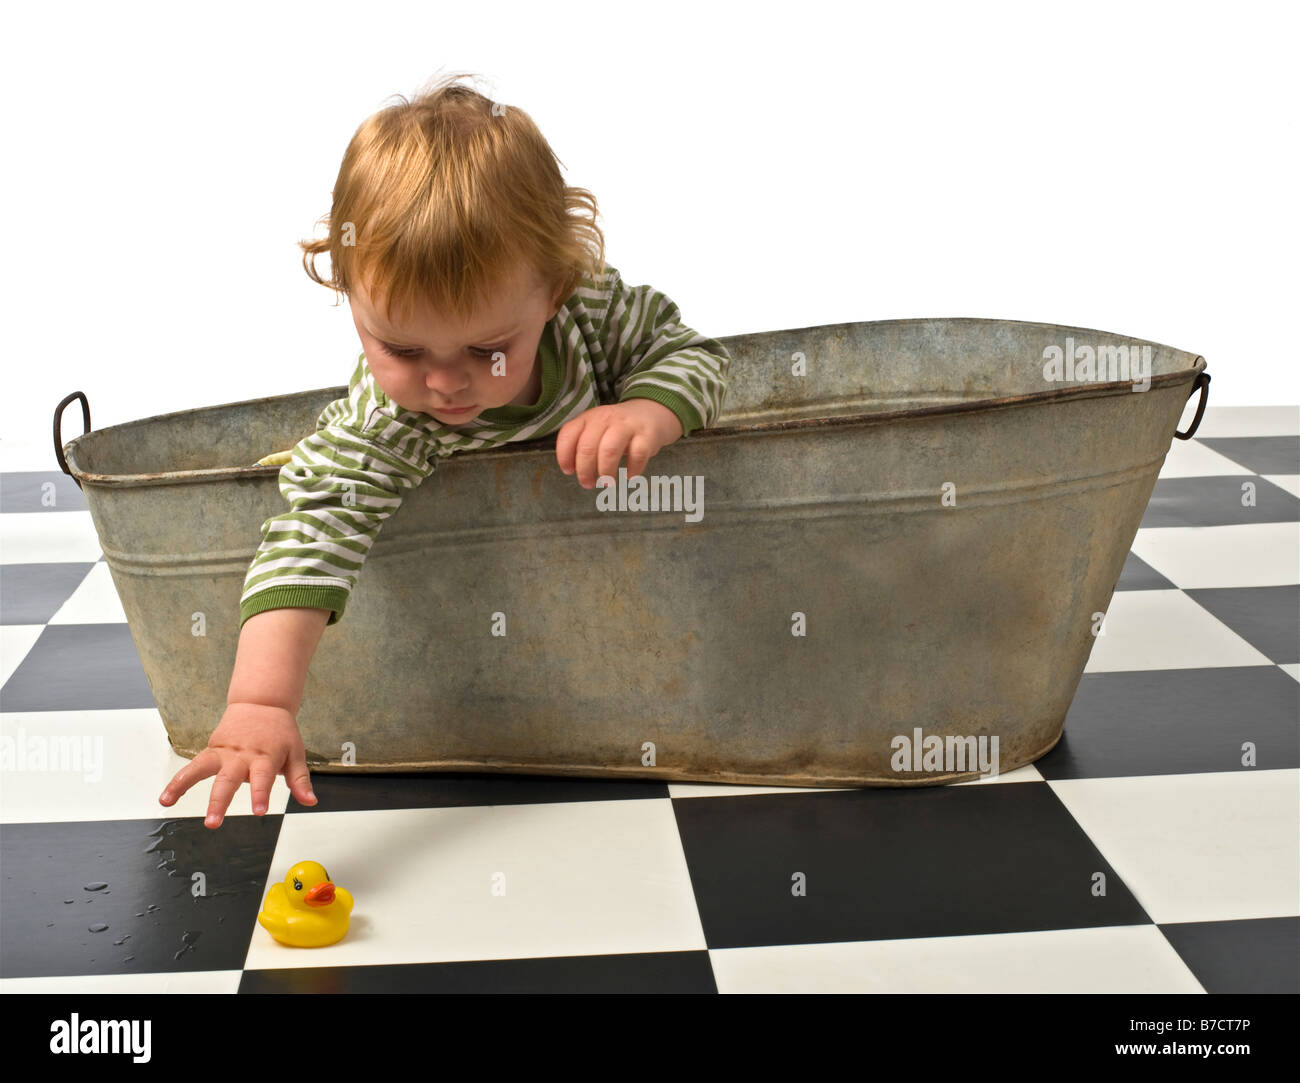 baby in an old bathtub with rubber duck Stock Photo: 21795418 - Alamy